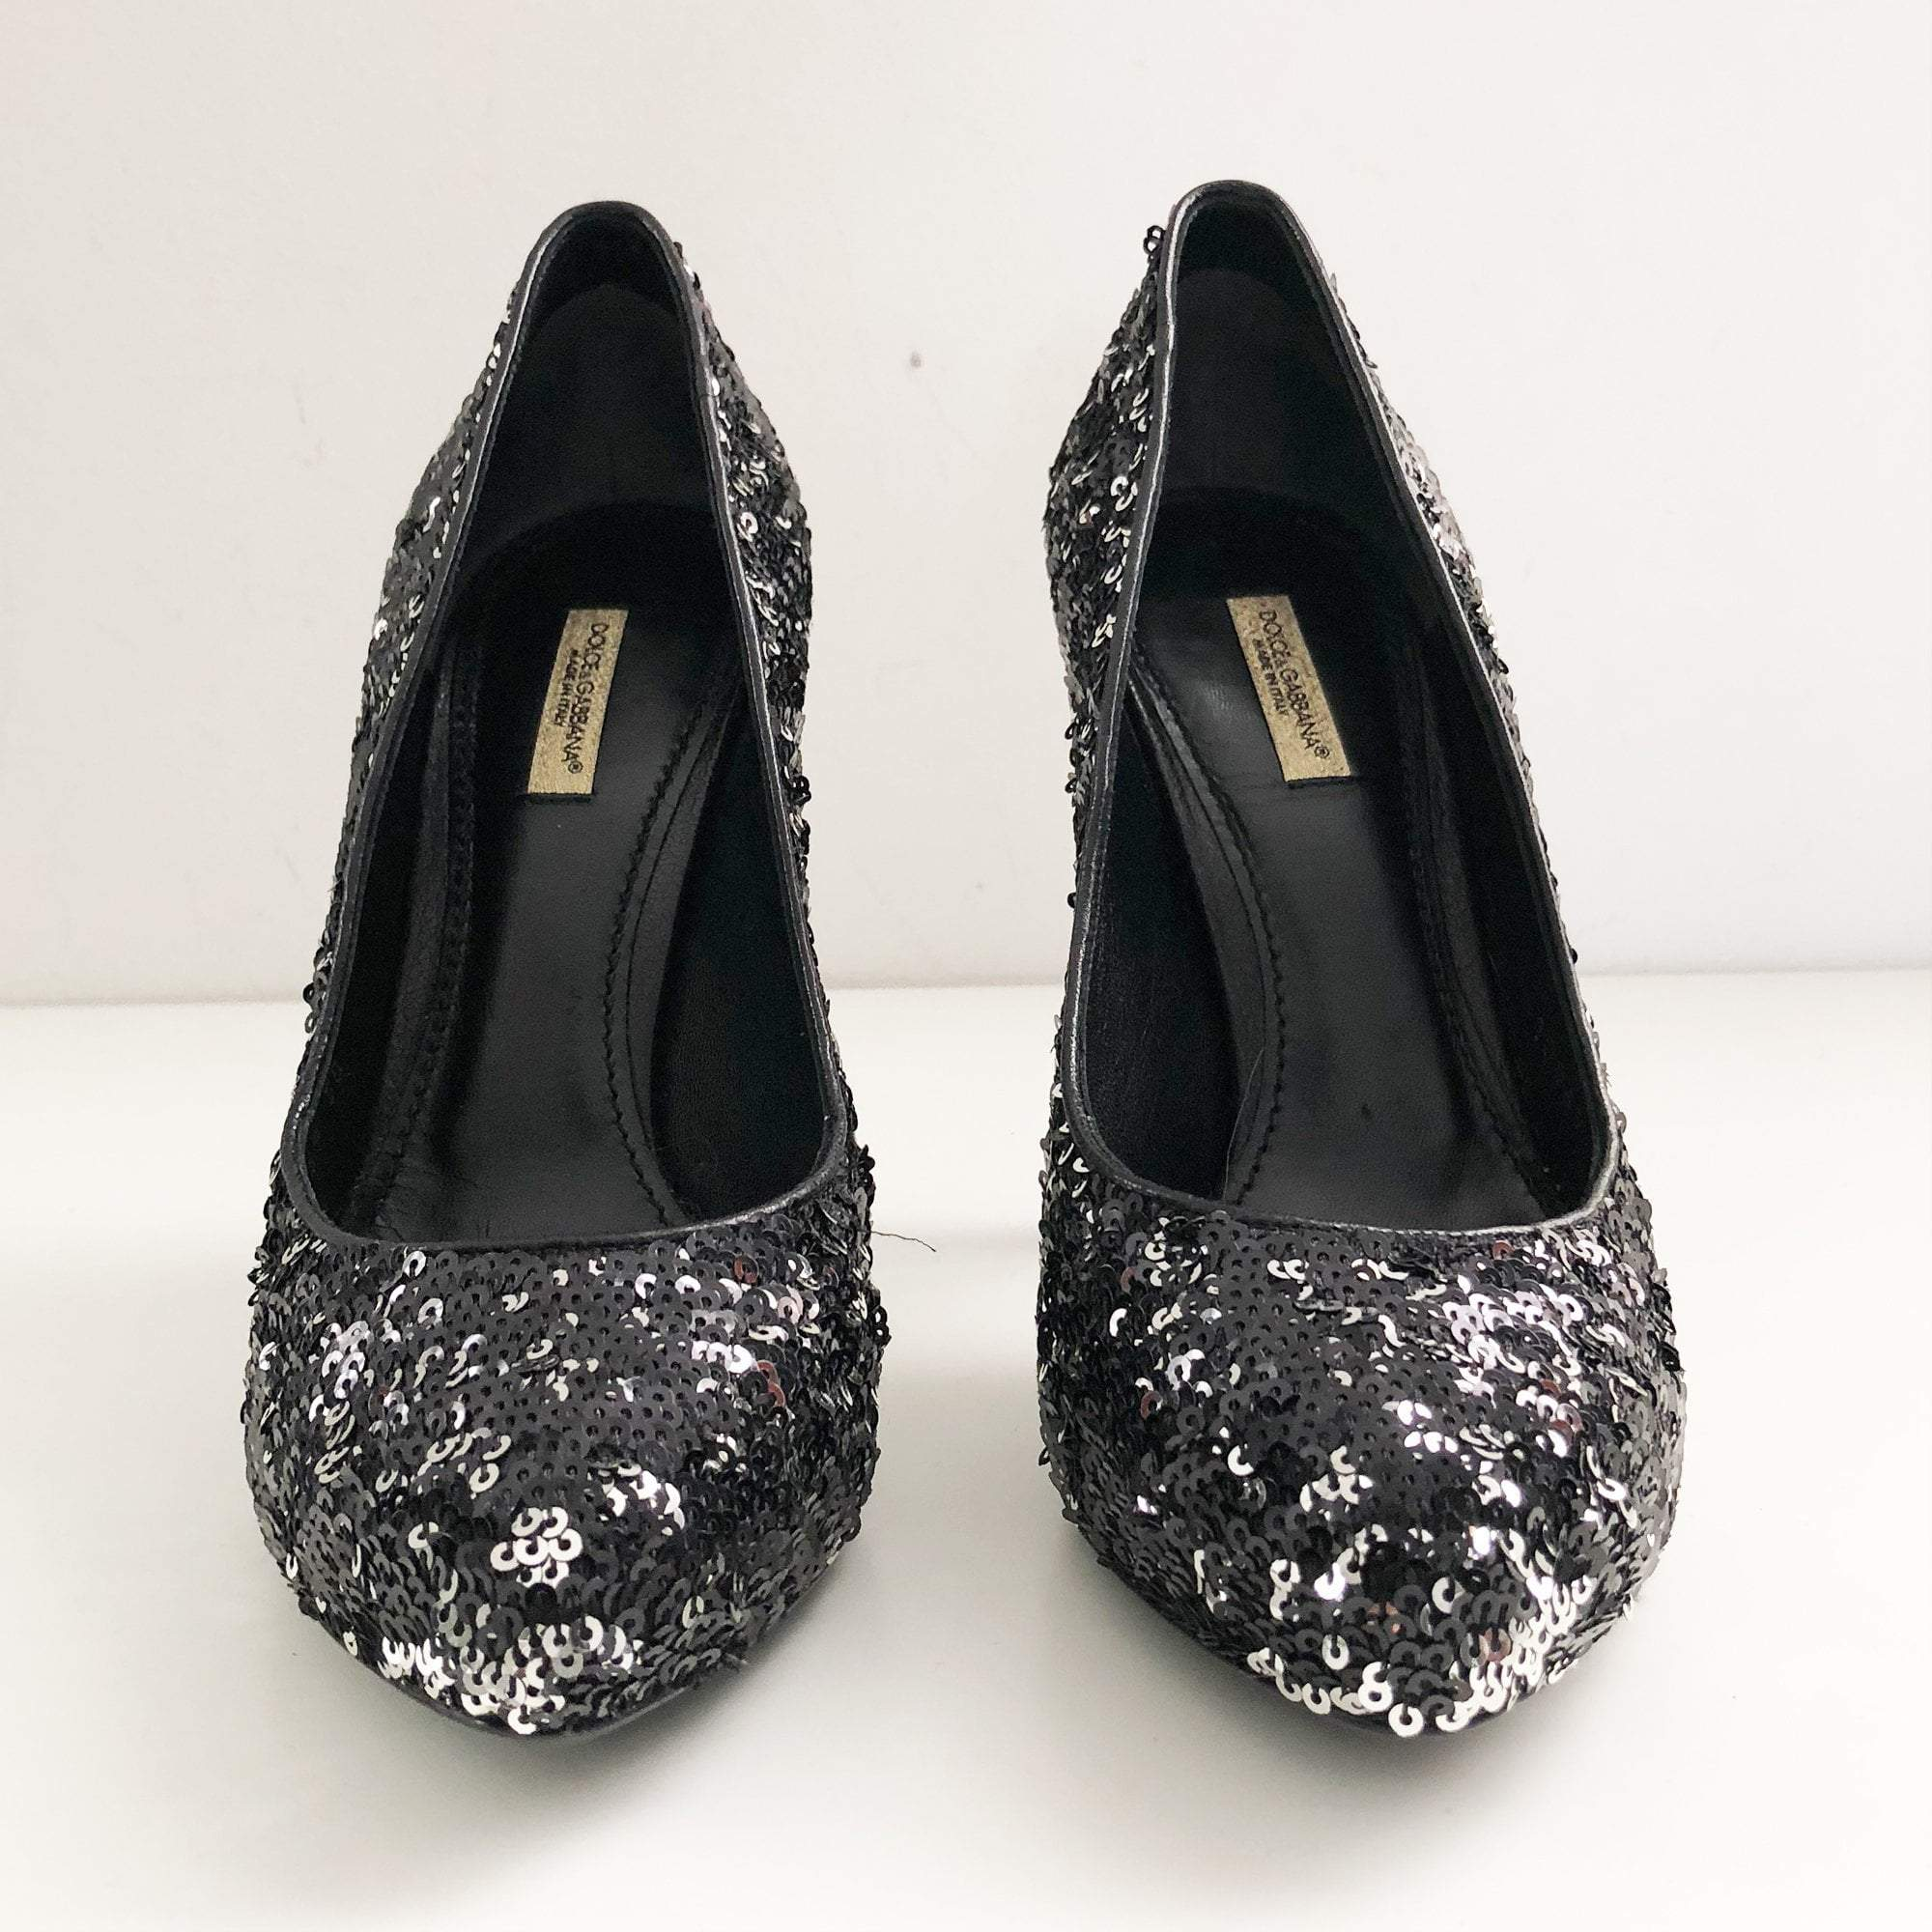 Dolce & Gabbana Sequin Pumps